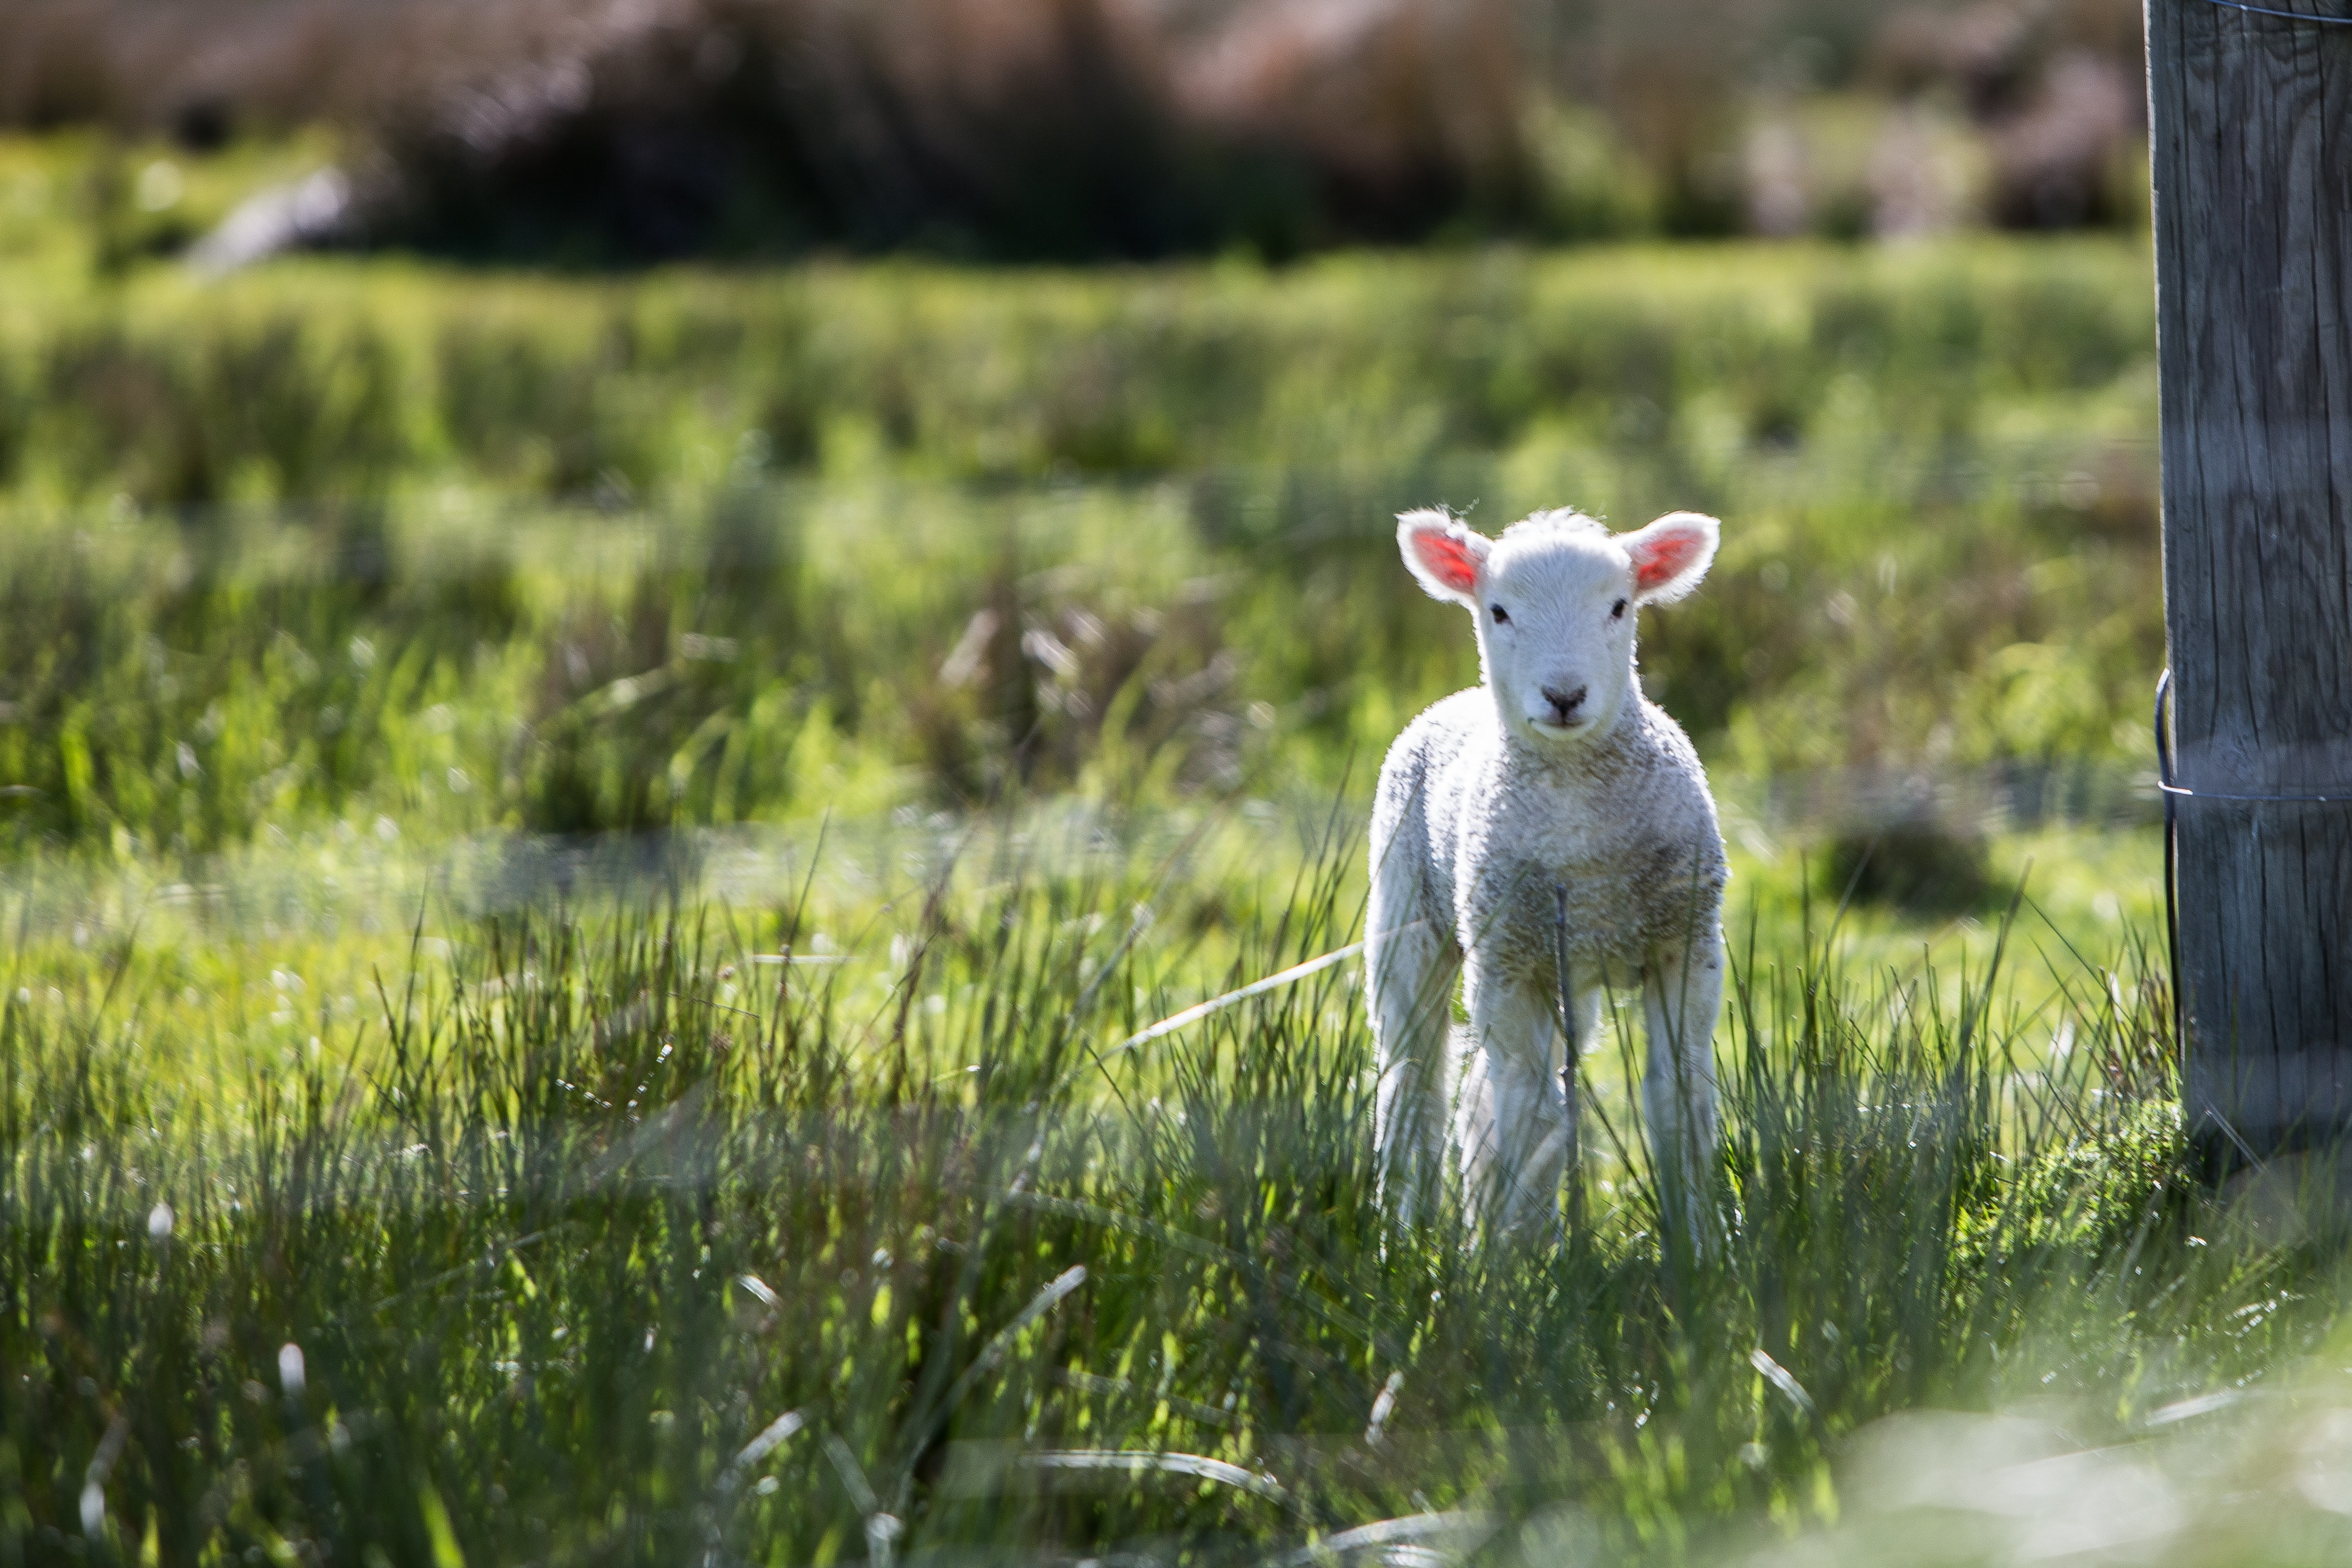 A young lamb on a sunny spring day